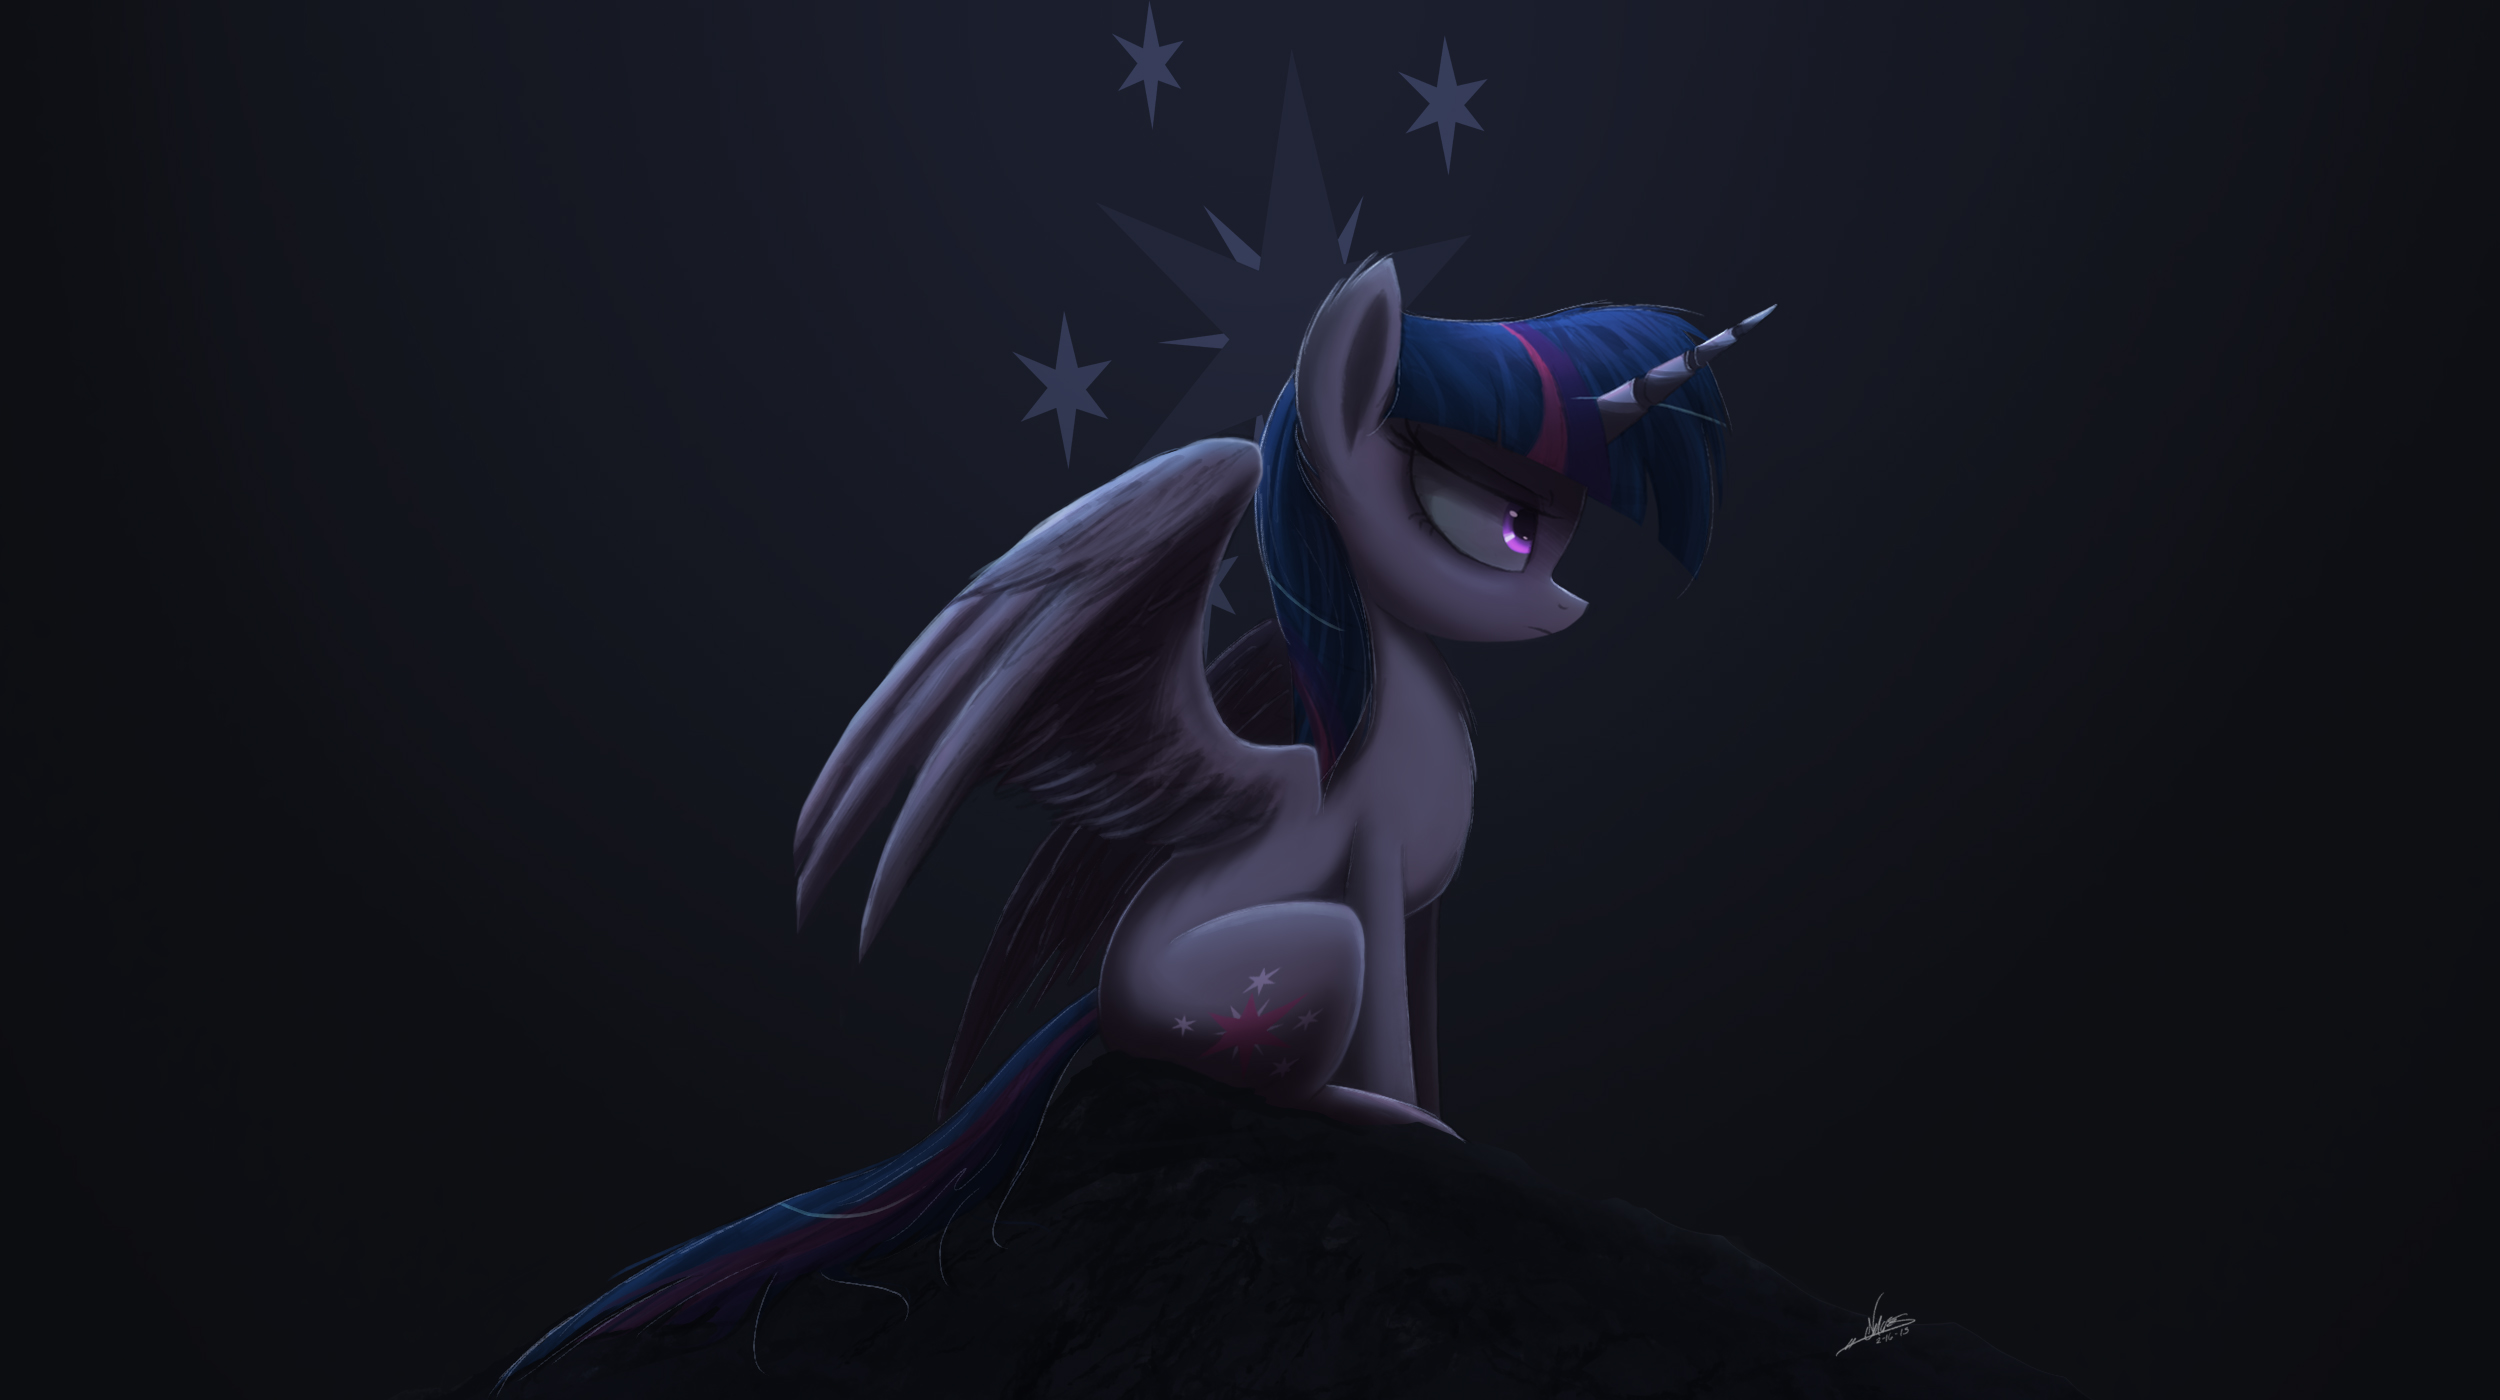 http://orig08.deviantart.net/5910/f/2015/048/d/4/the_fourth_alicorn_by_ncmares-d8icdie.jpg